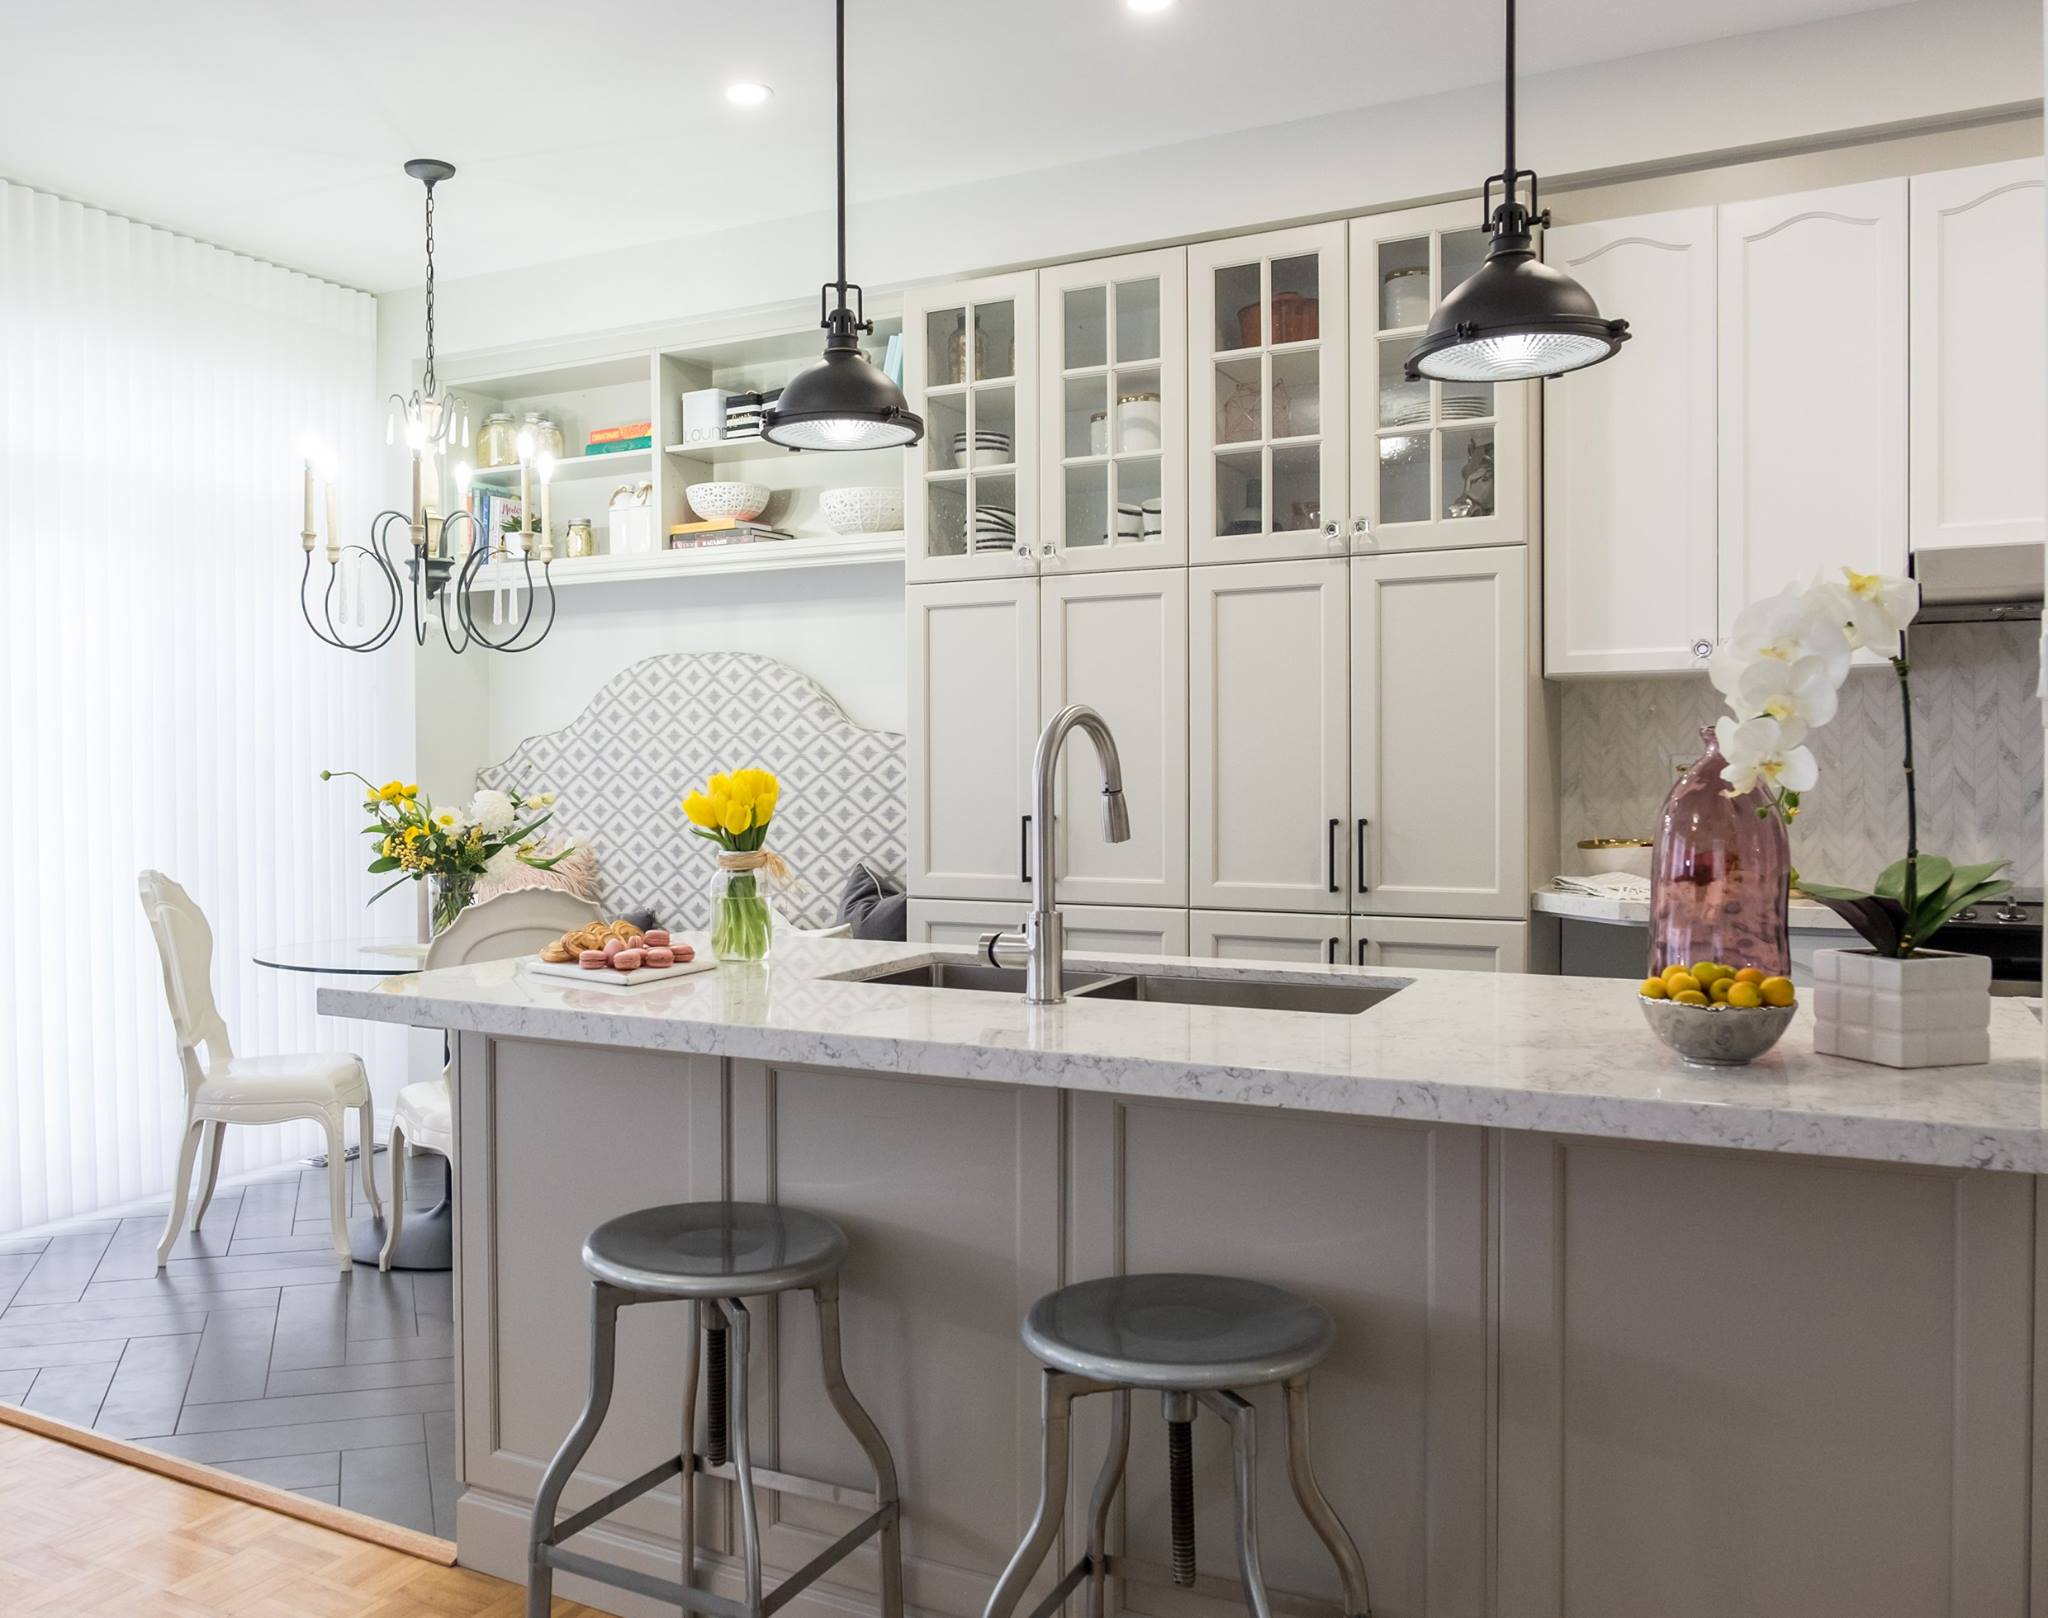 Modern Kitchen Cabinets On Property Brothers